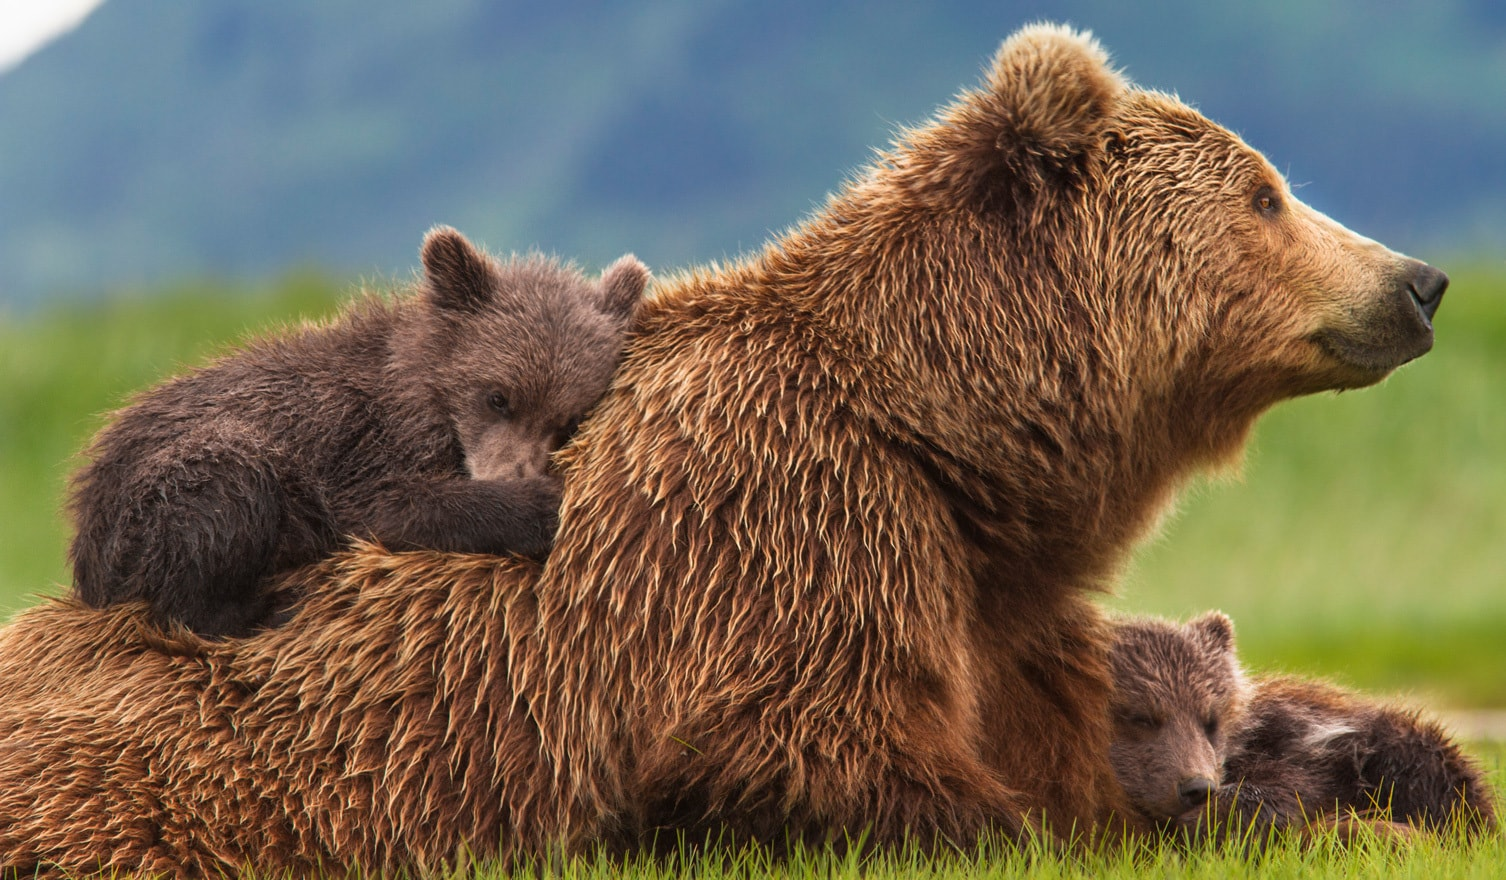 BEARS tells the story of a mother, Sky, teaching her young cubs, Amber and Scout, valuable life l...